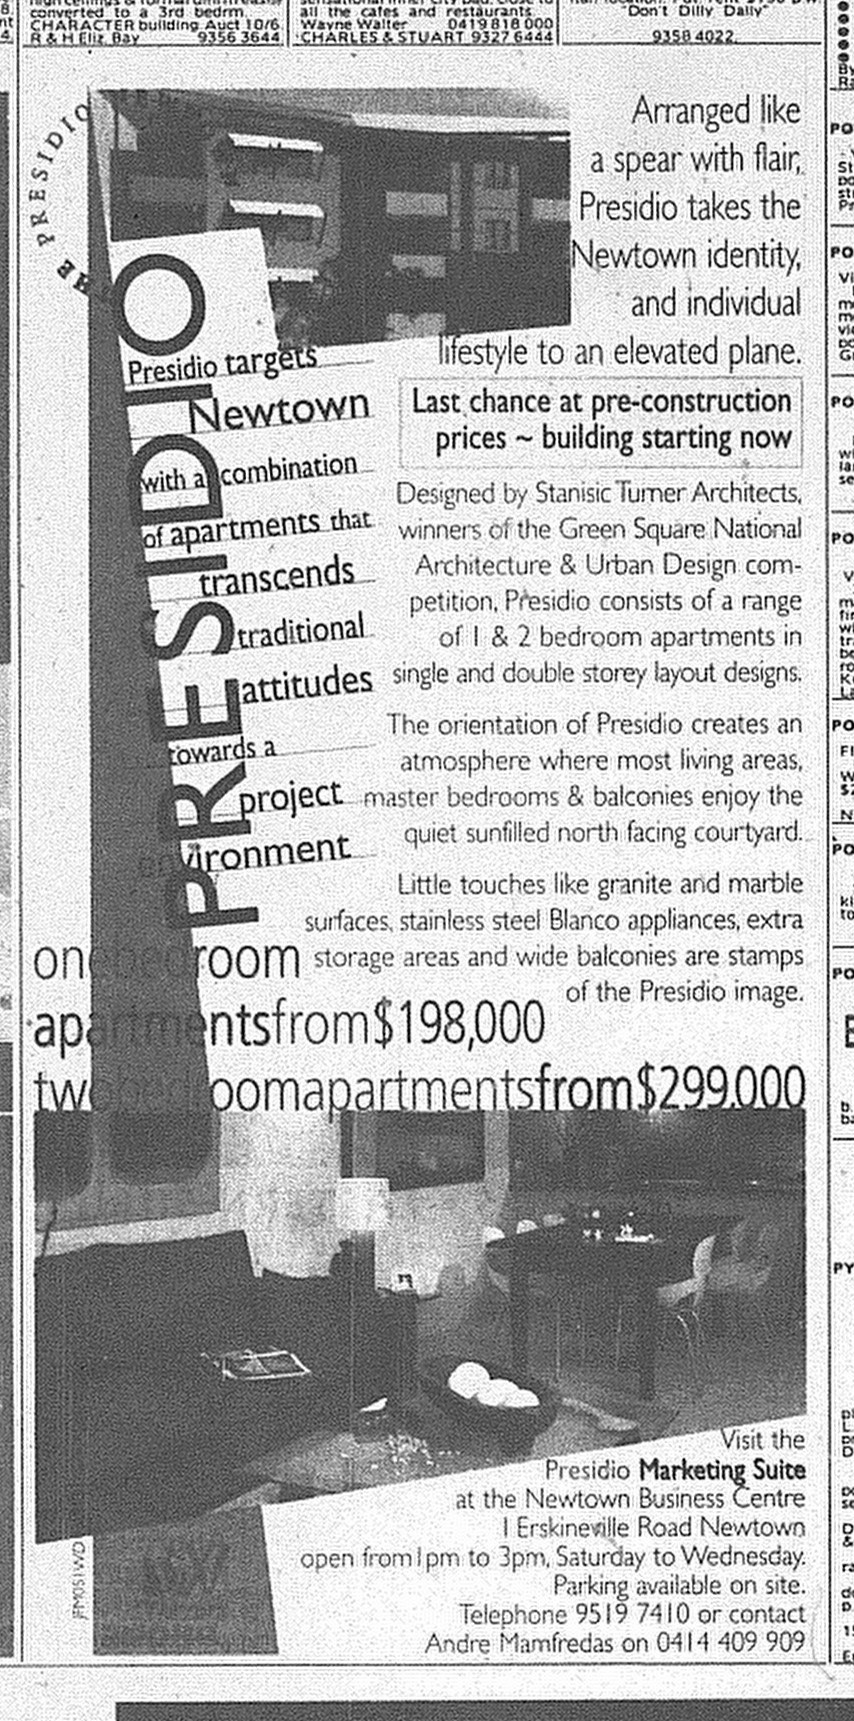 Presideo Targets June 5 1999 SMH 19RE